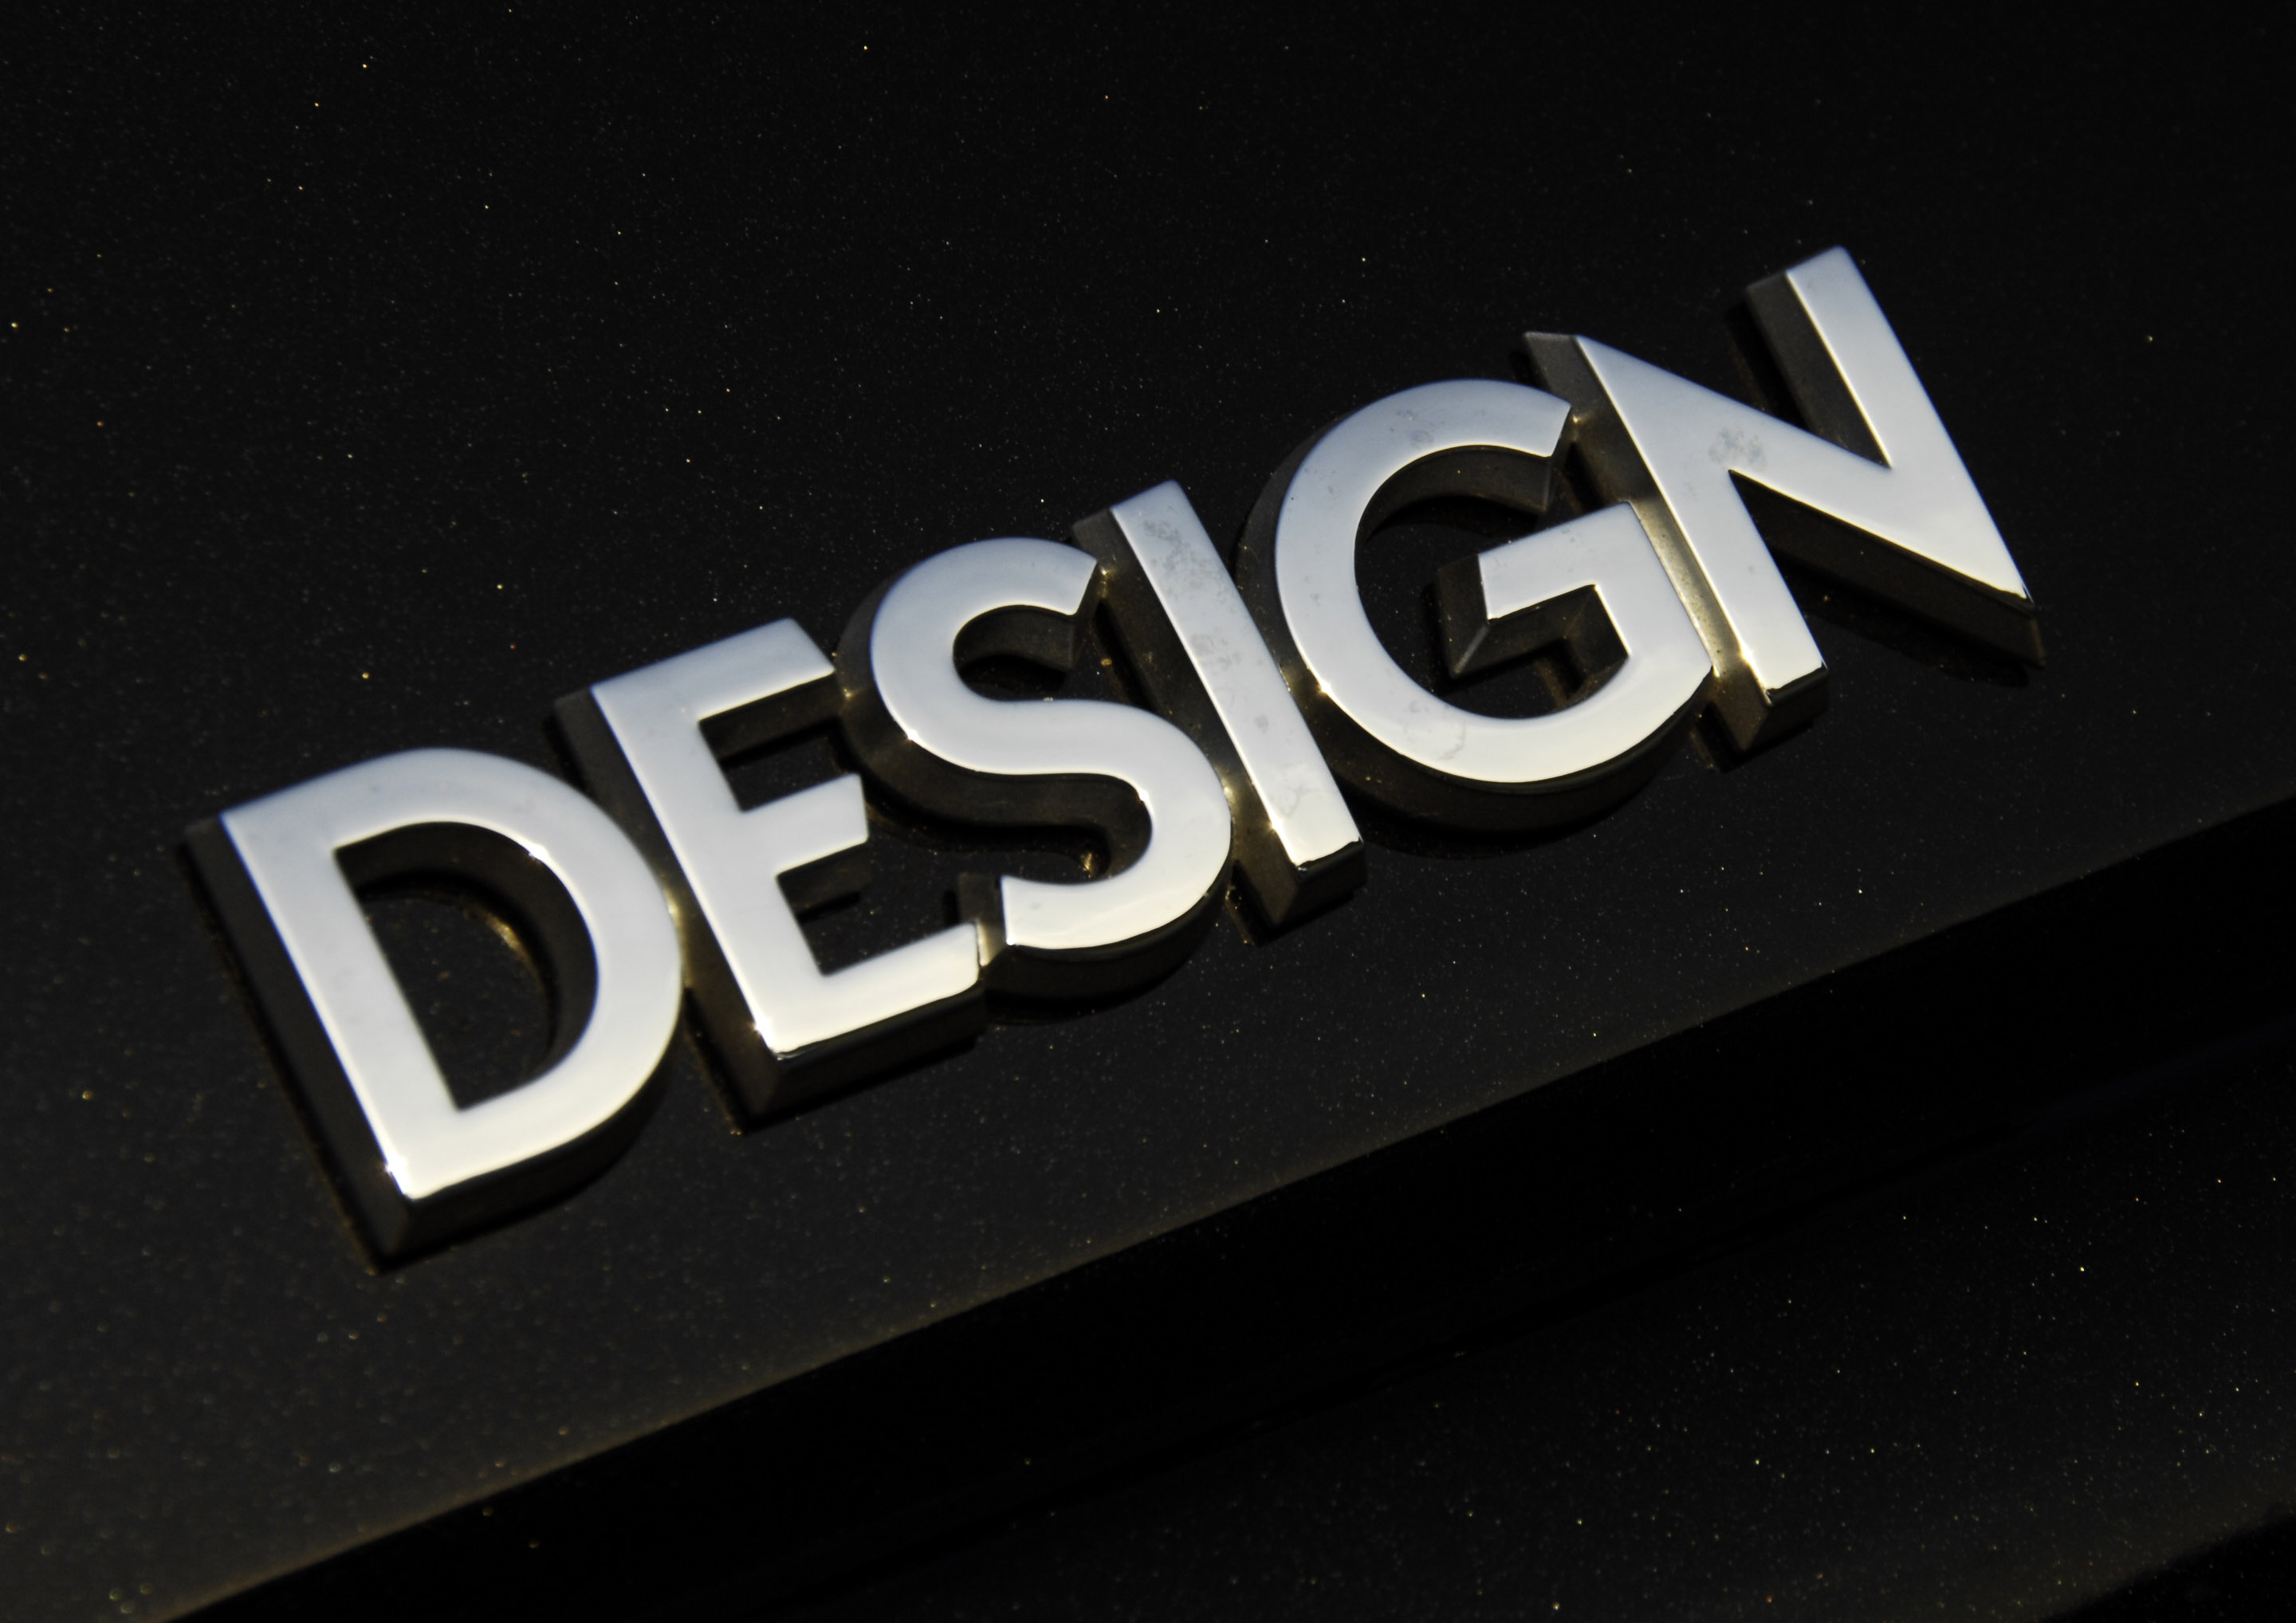 design Top unique logos which tou never seen before